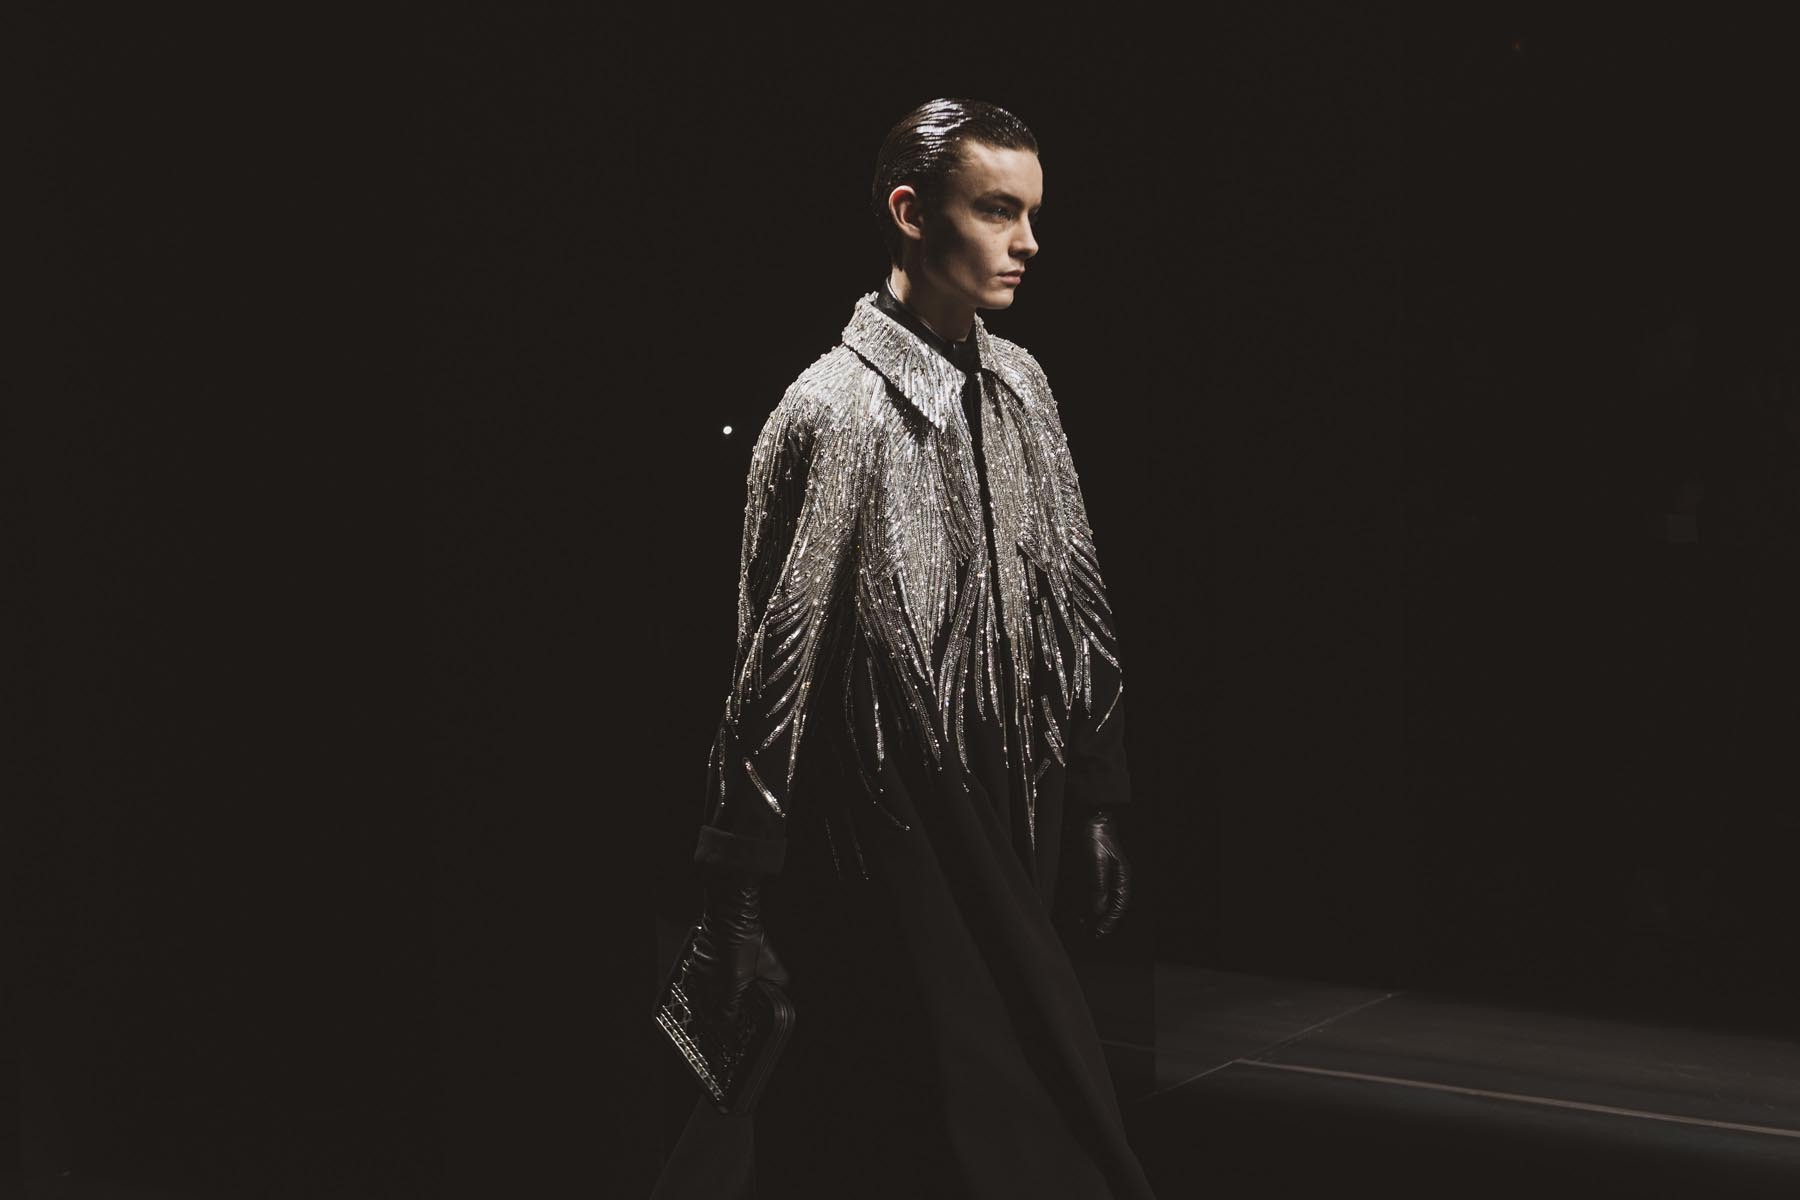 Dior-Homme-Hiver-2020-21-18